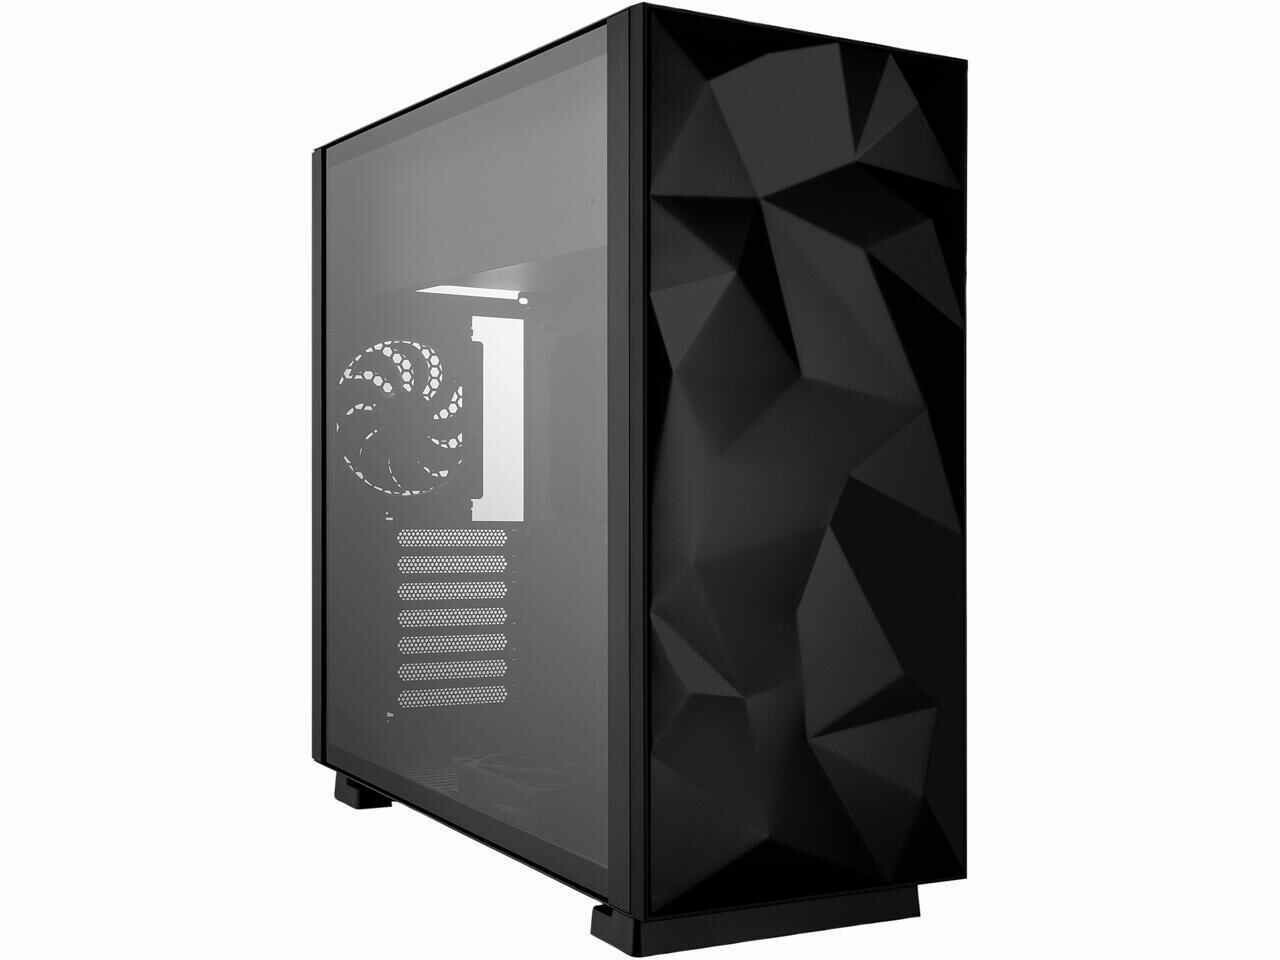 Rosewill Prism S Lite (Black) - ATX Mid Tower Gaming PC Computer Case with 2 x 120mm Fans (Supports up to 6), 240mm AIO Support, EATX Support, Top Mount PSU & HDD/SSD, Tempered Glass & Black Steel